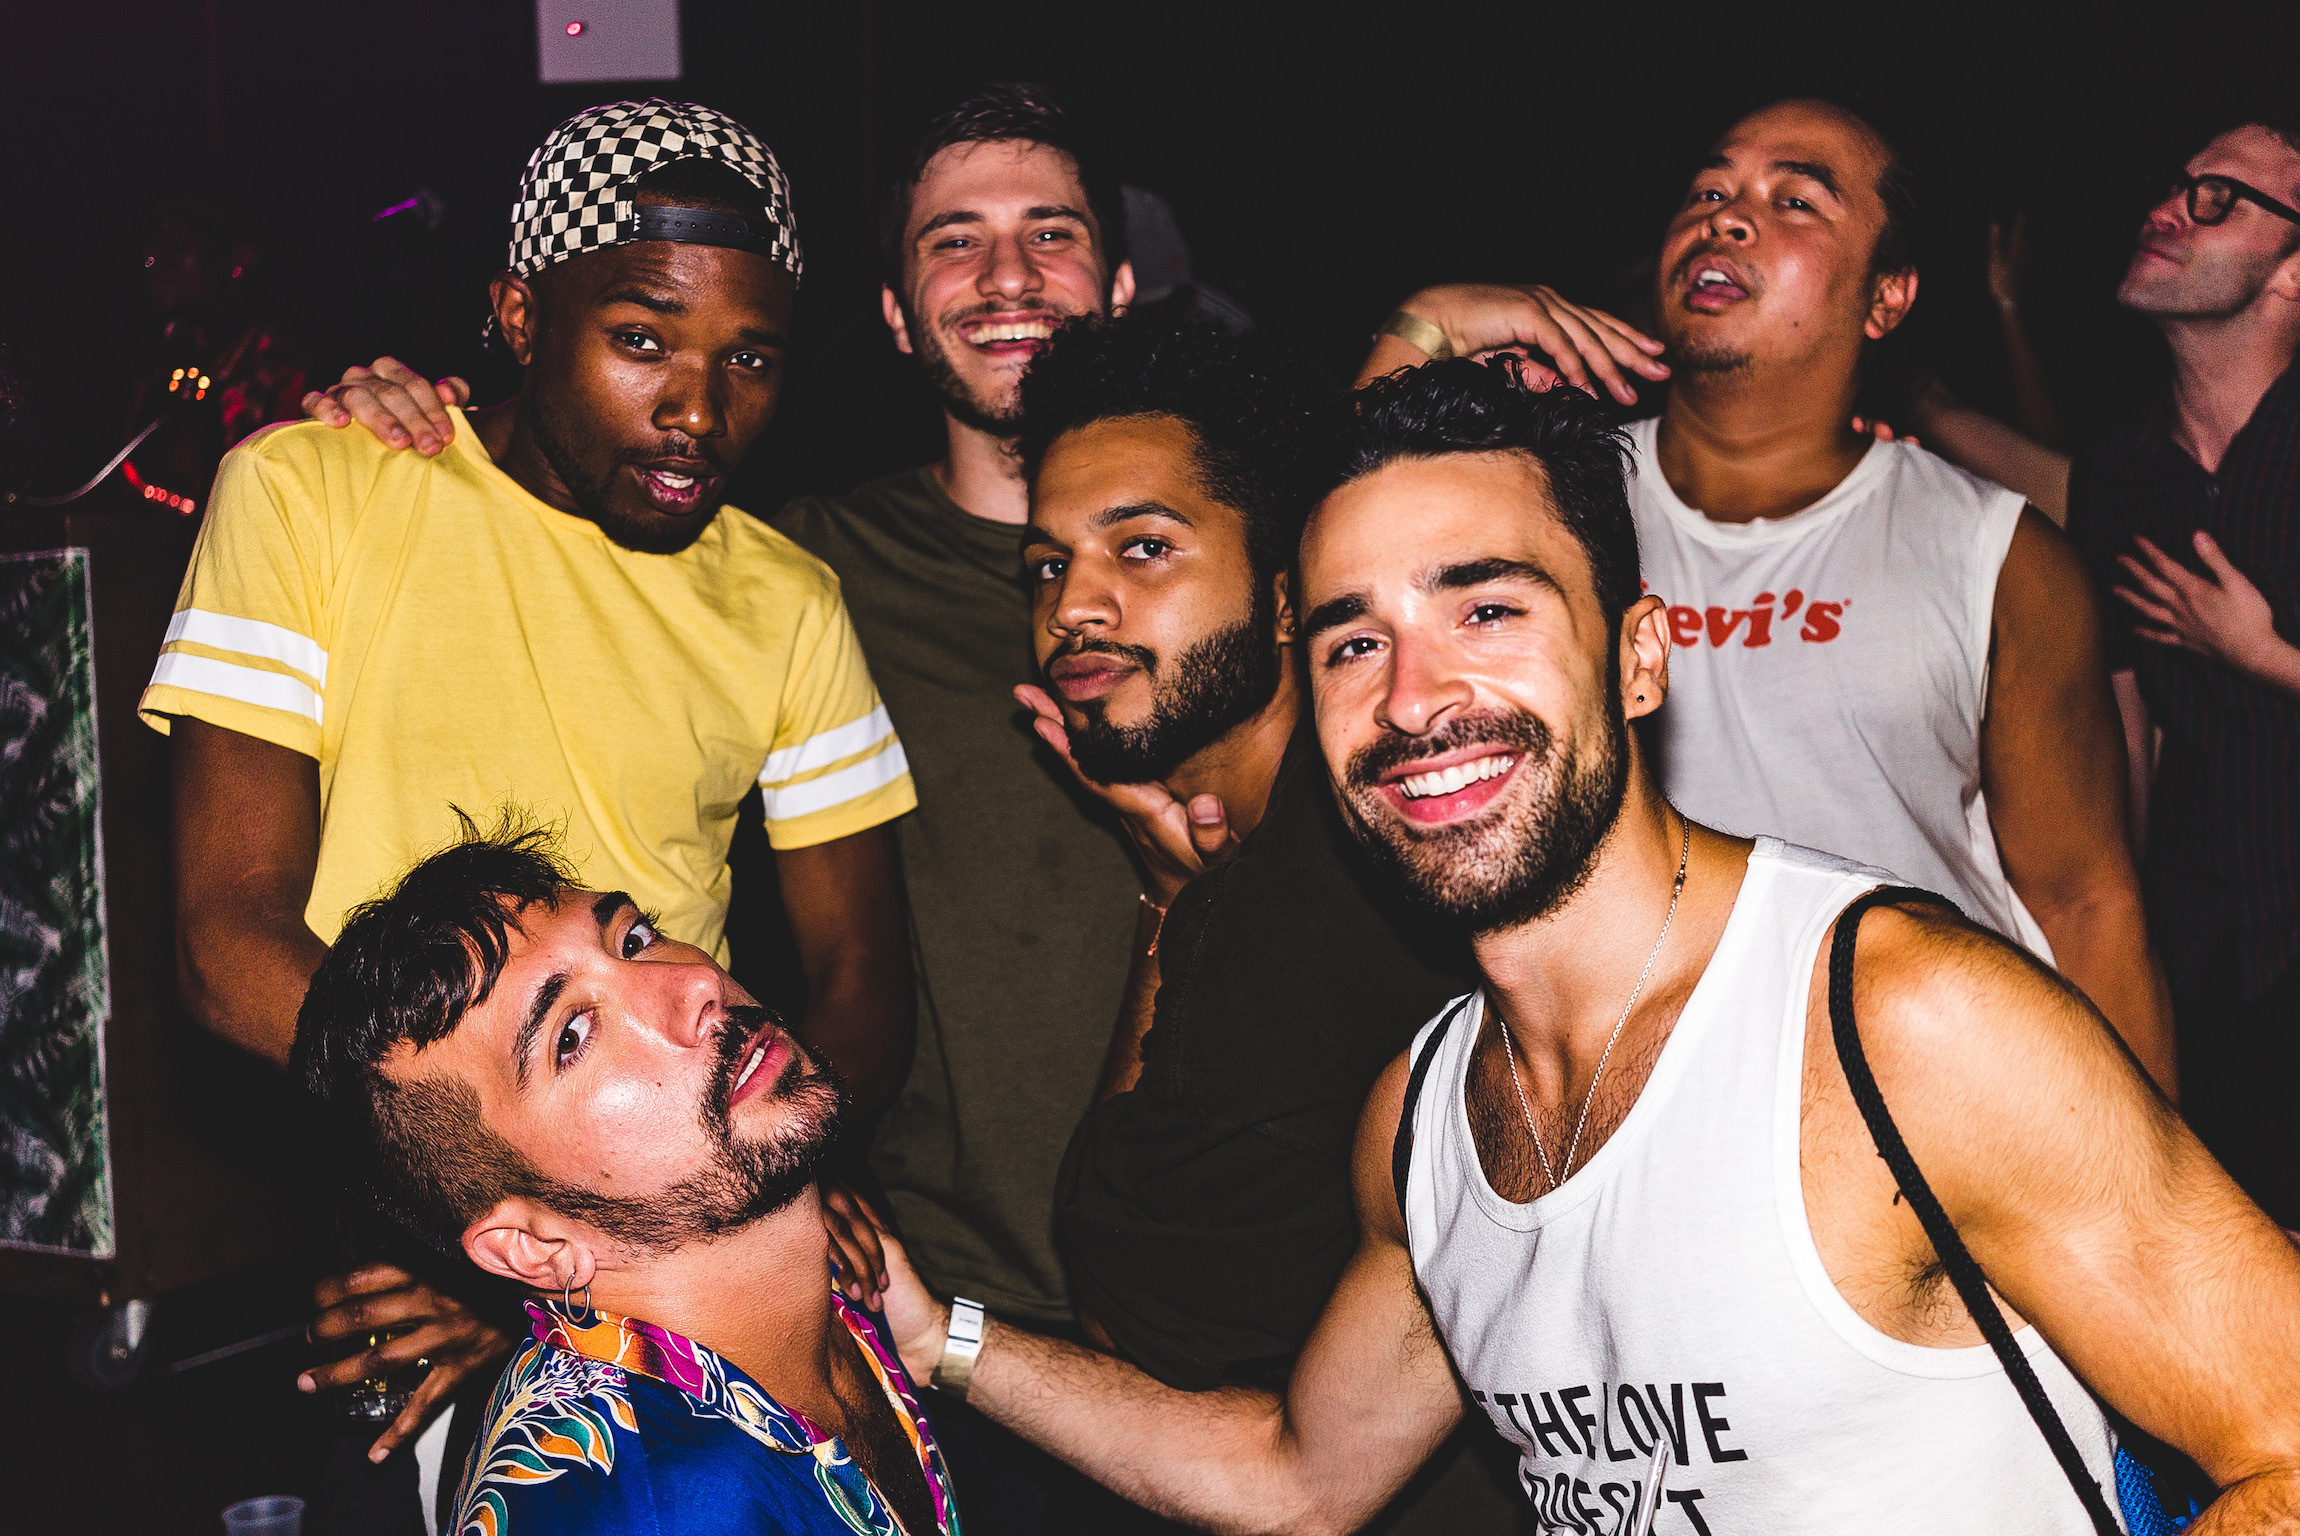 YES HOMO: A New Queer Daytime Dance Party